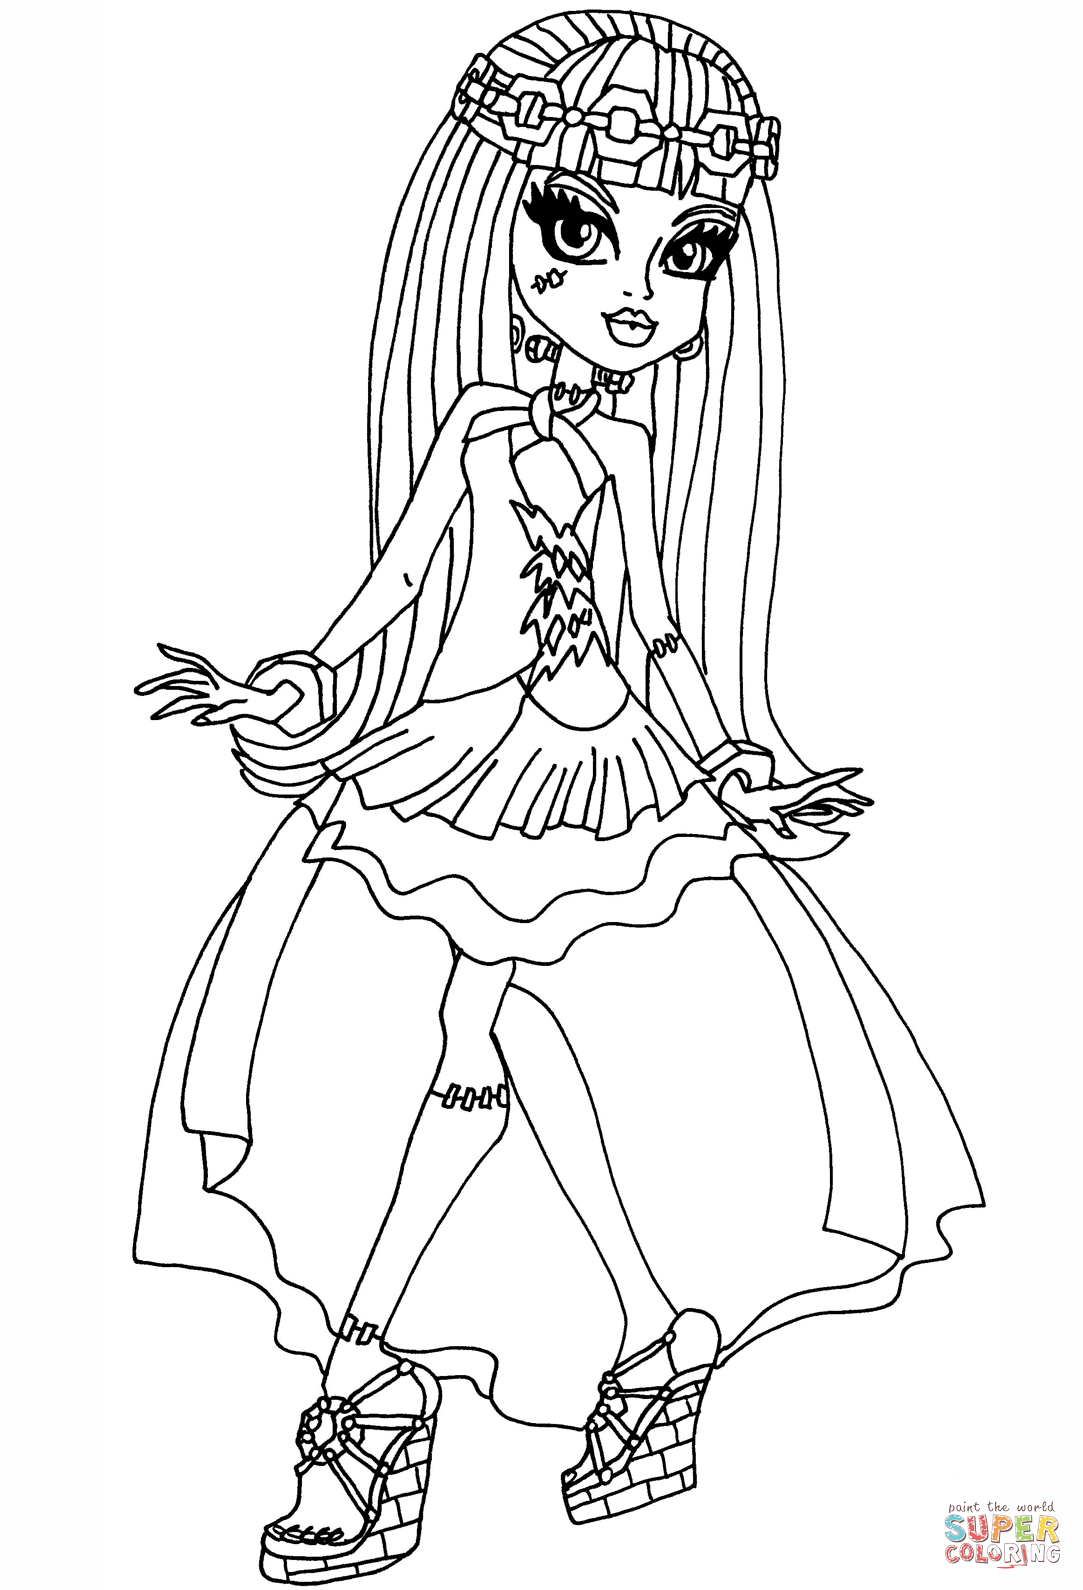 monster high pictures to print and colour clawdeen wolf monster high coloring pages print colour monster pictures to and high